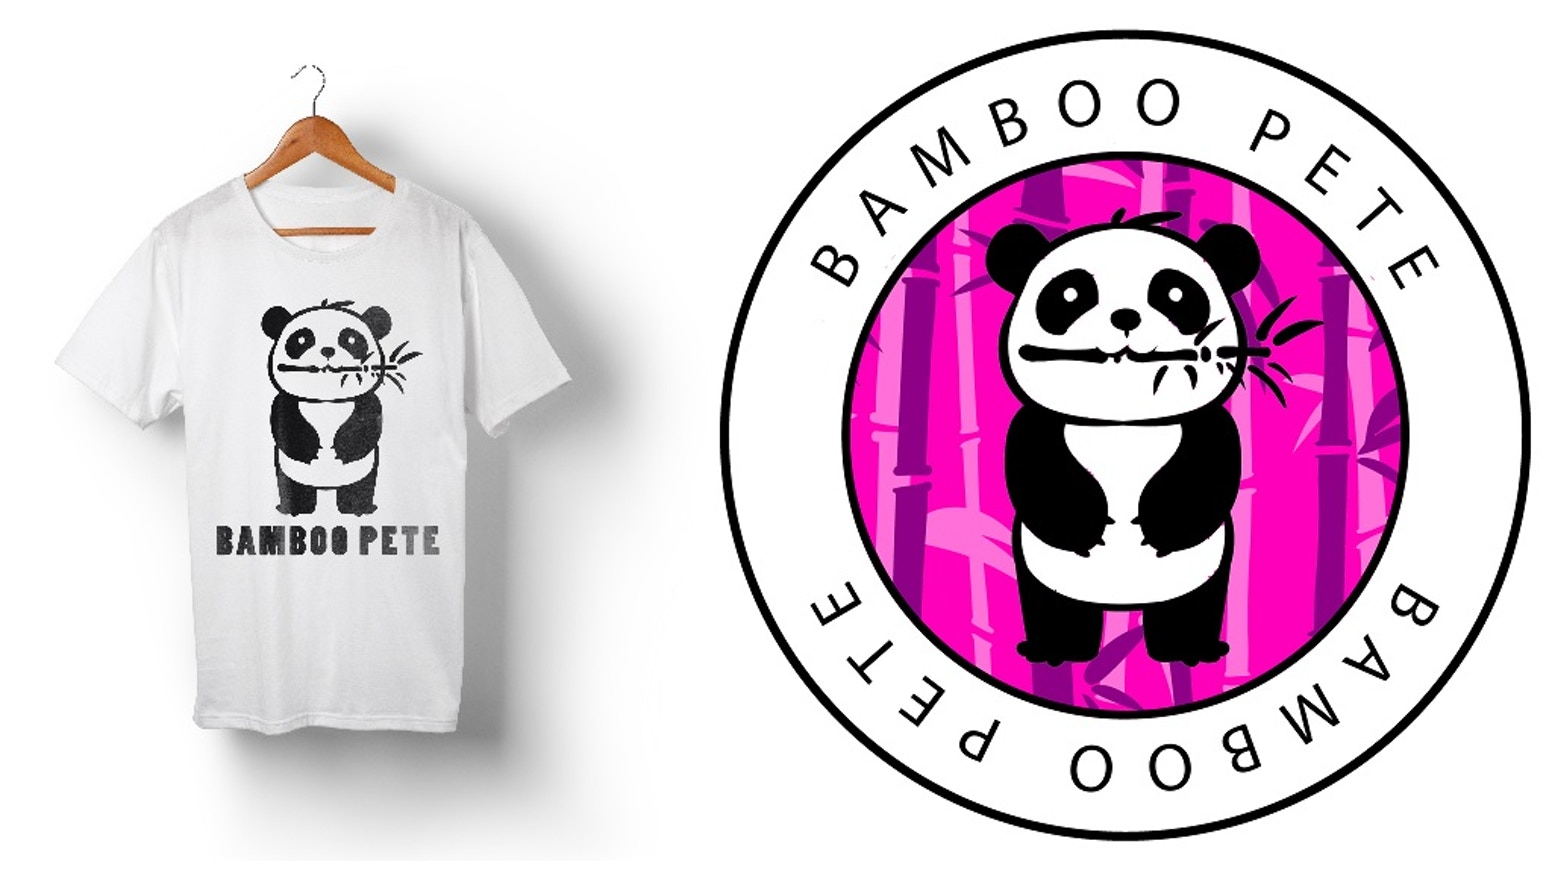 cf8ada86 Bamboo Pete Apparel: Panda T-shirts & more! by David Bowes — Kickstarter